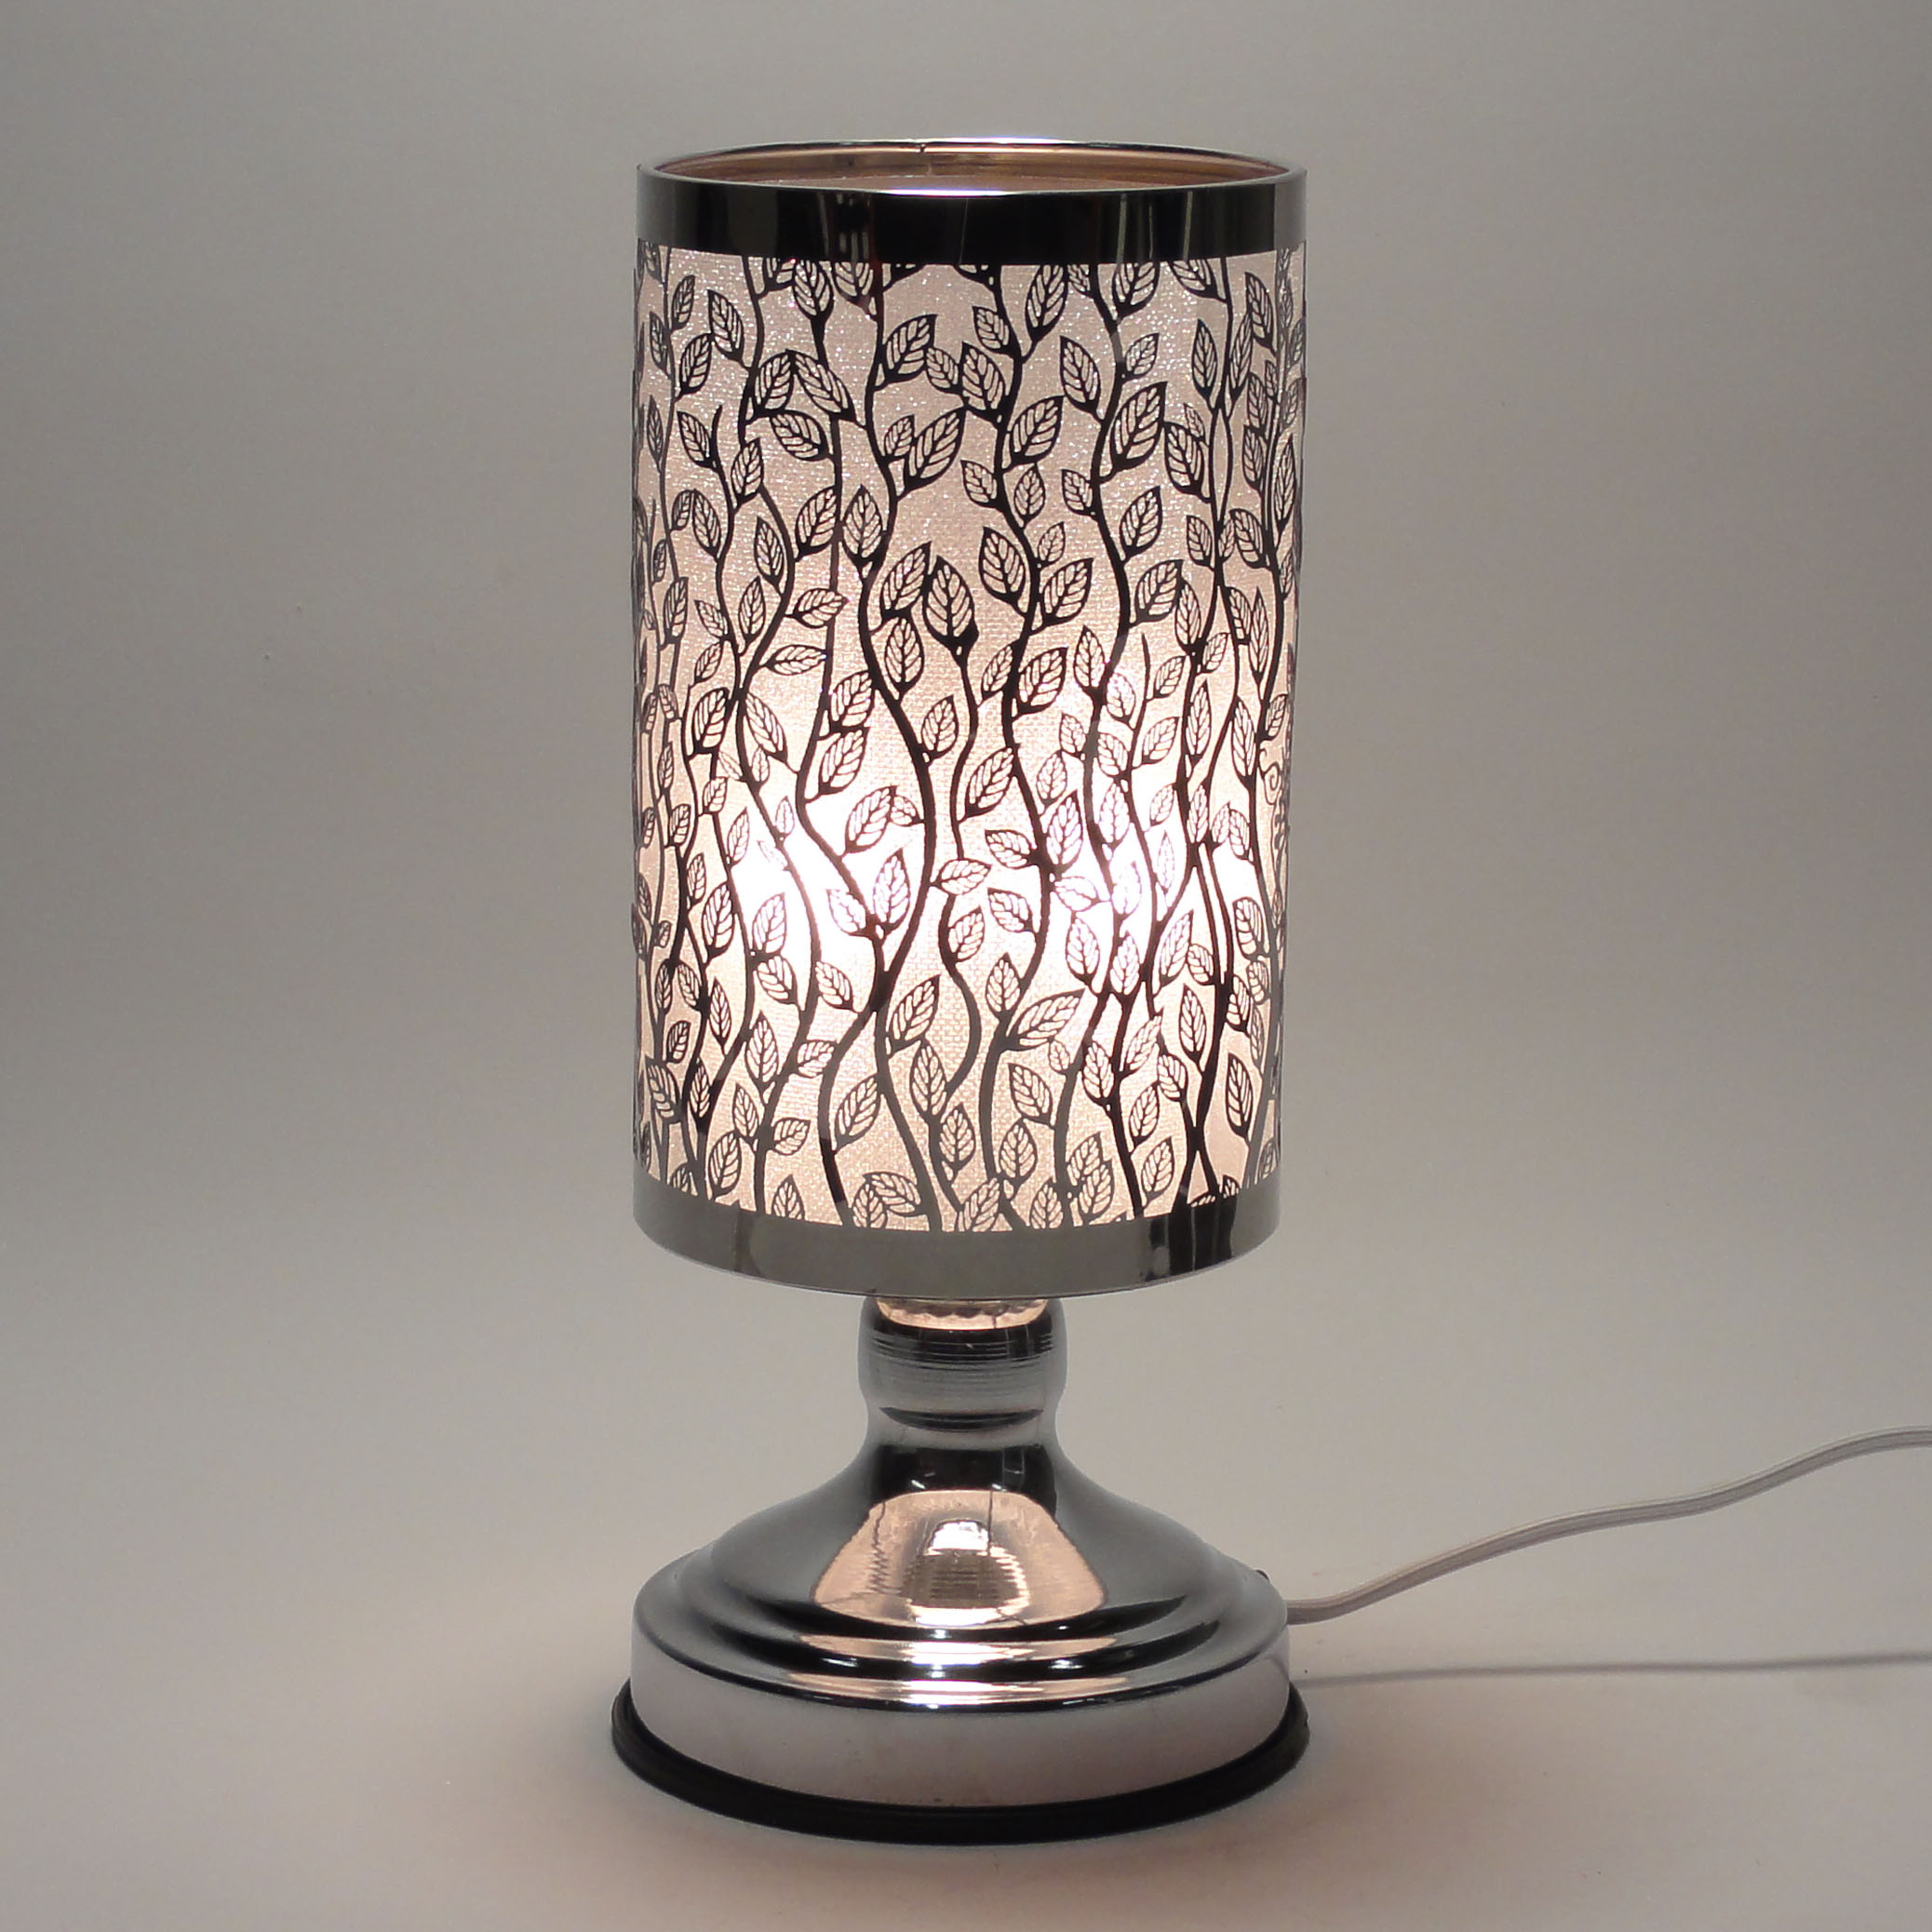 new electric metal silver aroma fragrance oil lamp warmer diffuser touch on off ebay. Black Bedroom Furniture Sets. Home Design Ideas